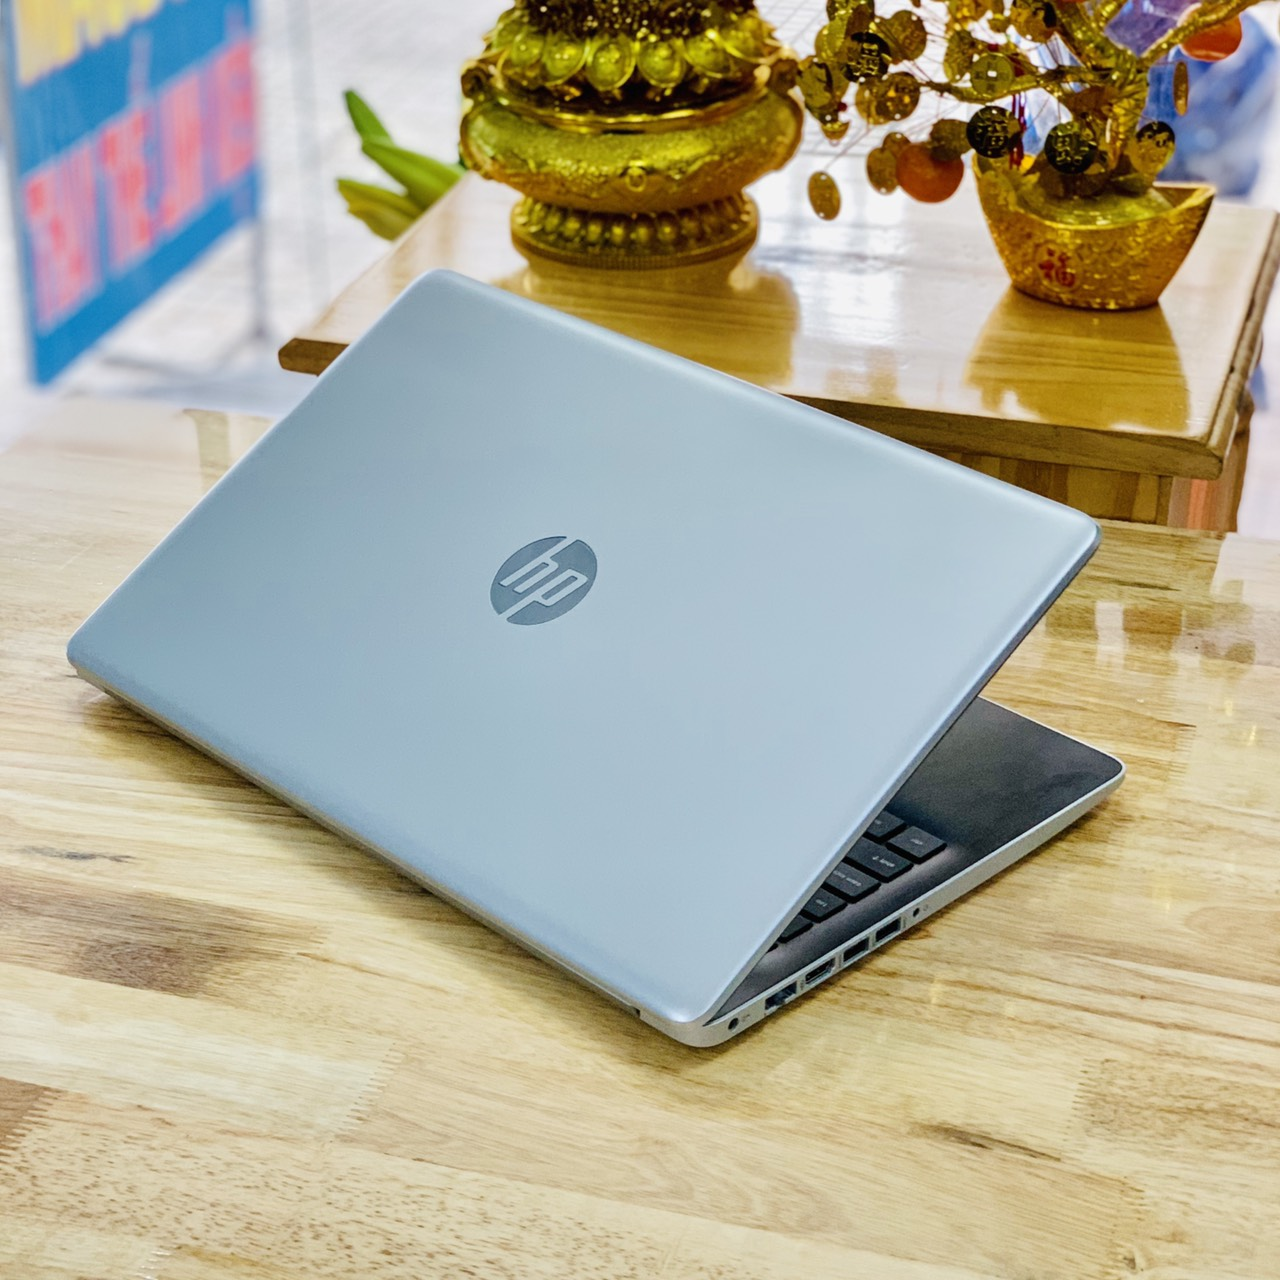 Laptop HP 15-da1031TX i5-8265U Ram 4GB HDD 1000GB Vga NVIDIA MX110(2GB) 15.6 icnh Like New BH Hãng Tới 2020